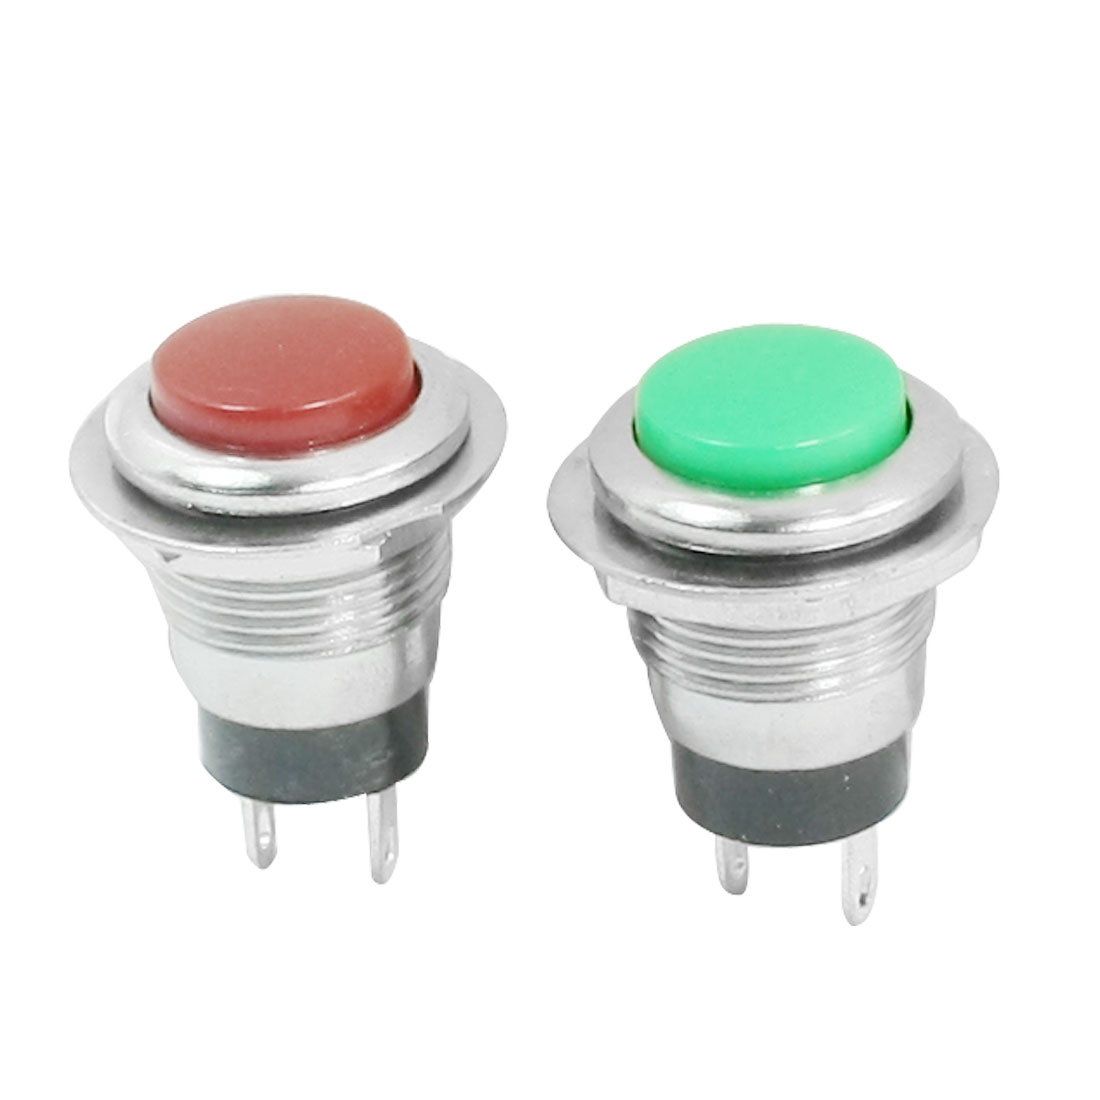 2pcs 2 Terminal 12mm Momentary SPST Red Green Push Button Switch AC125V 6A 250V 3A